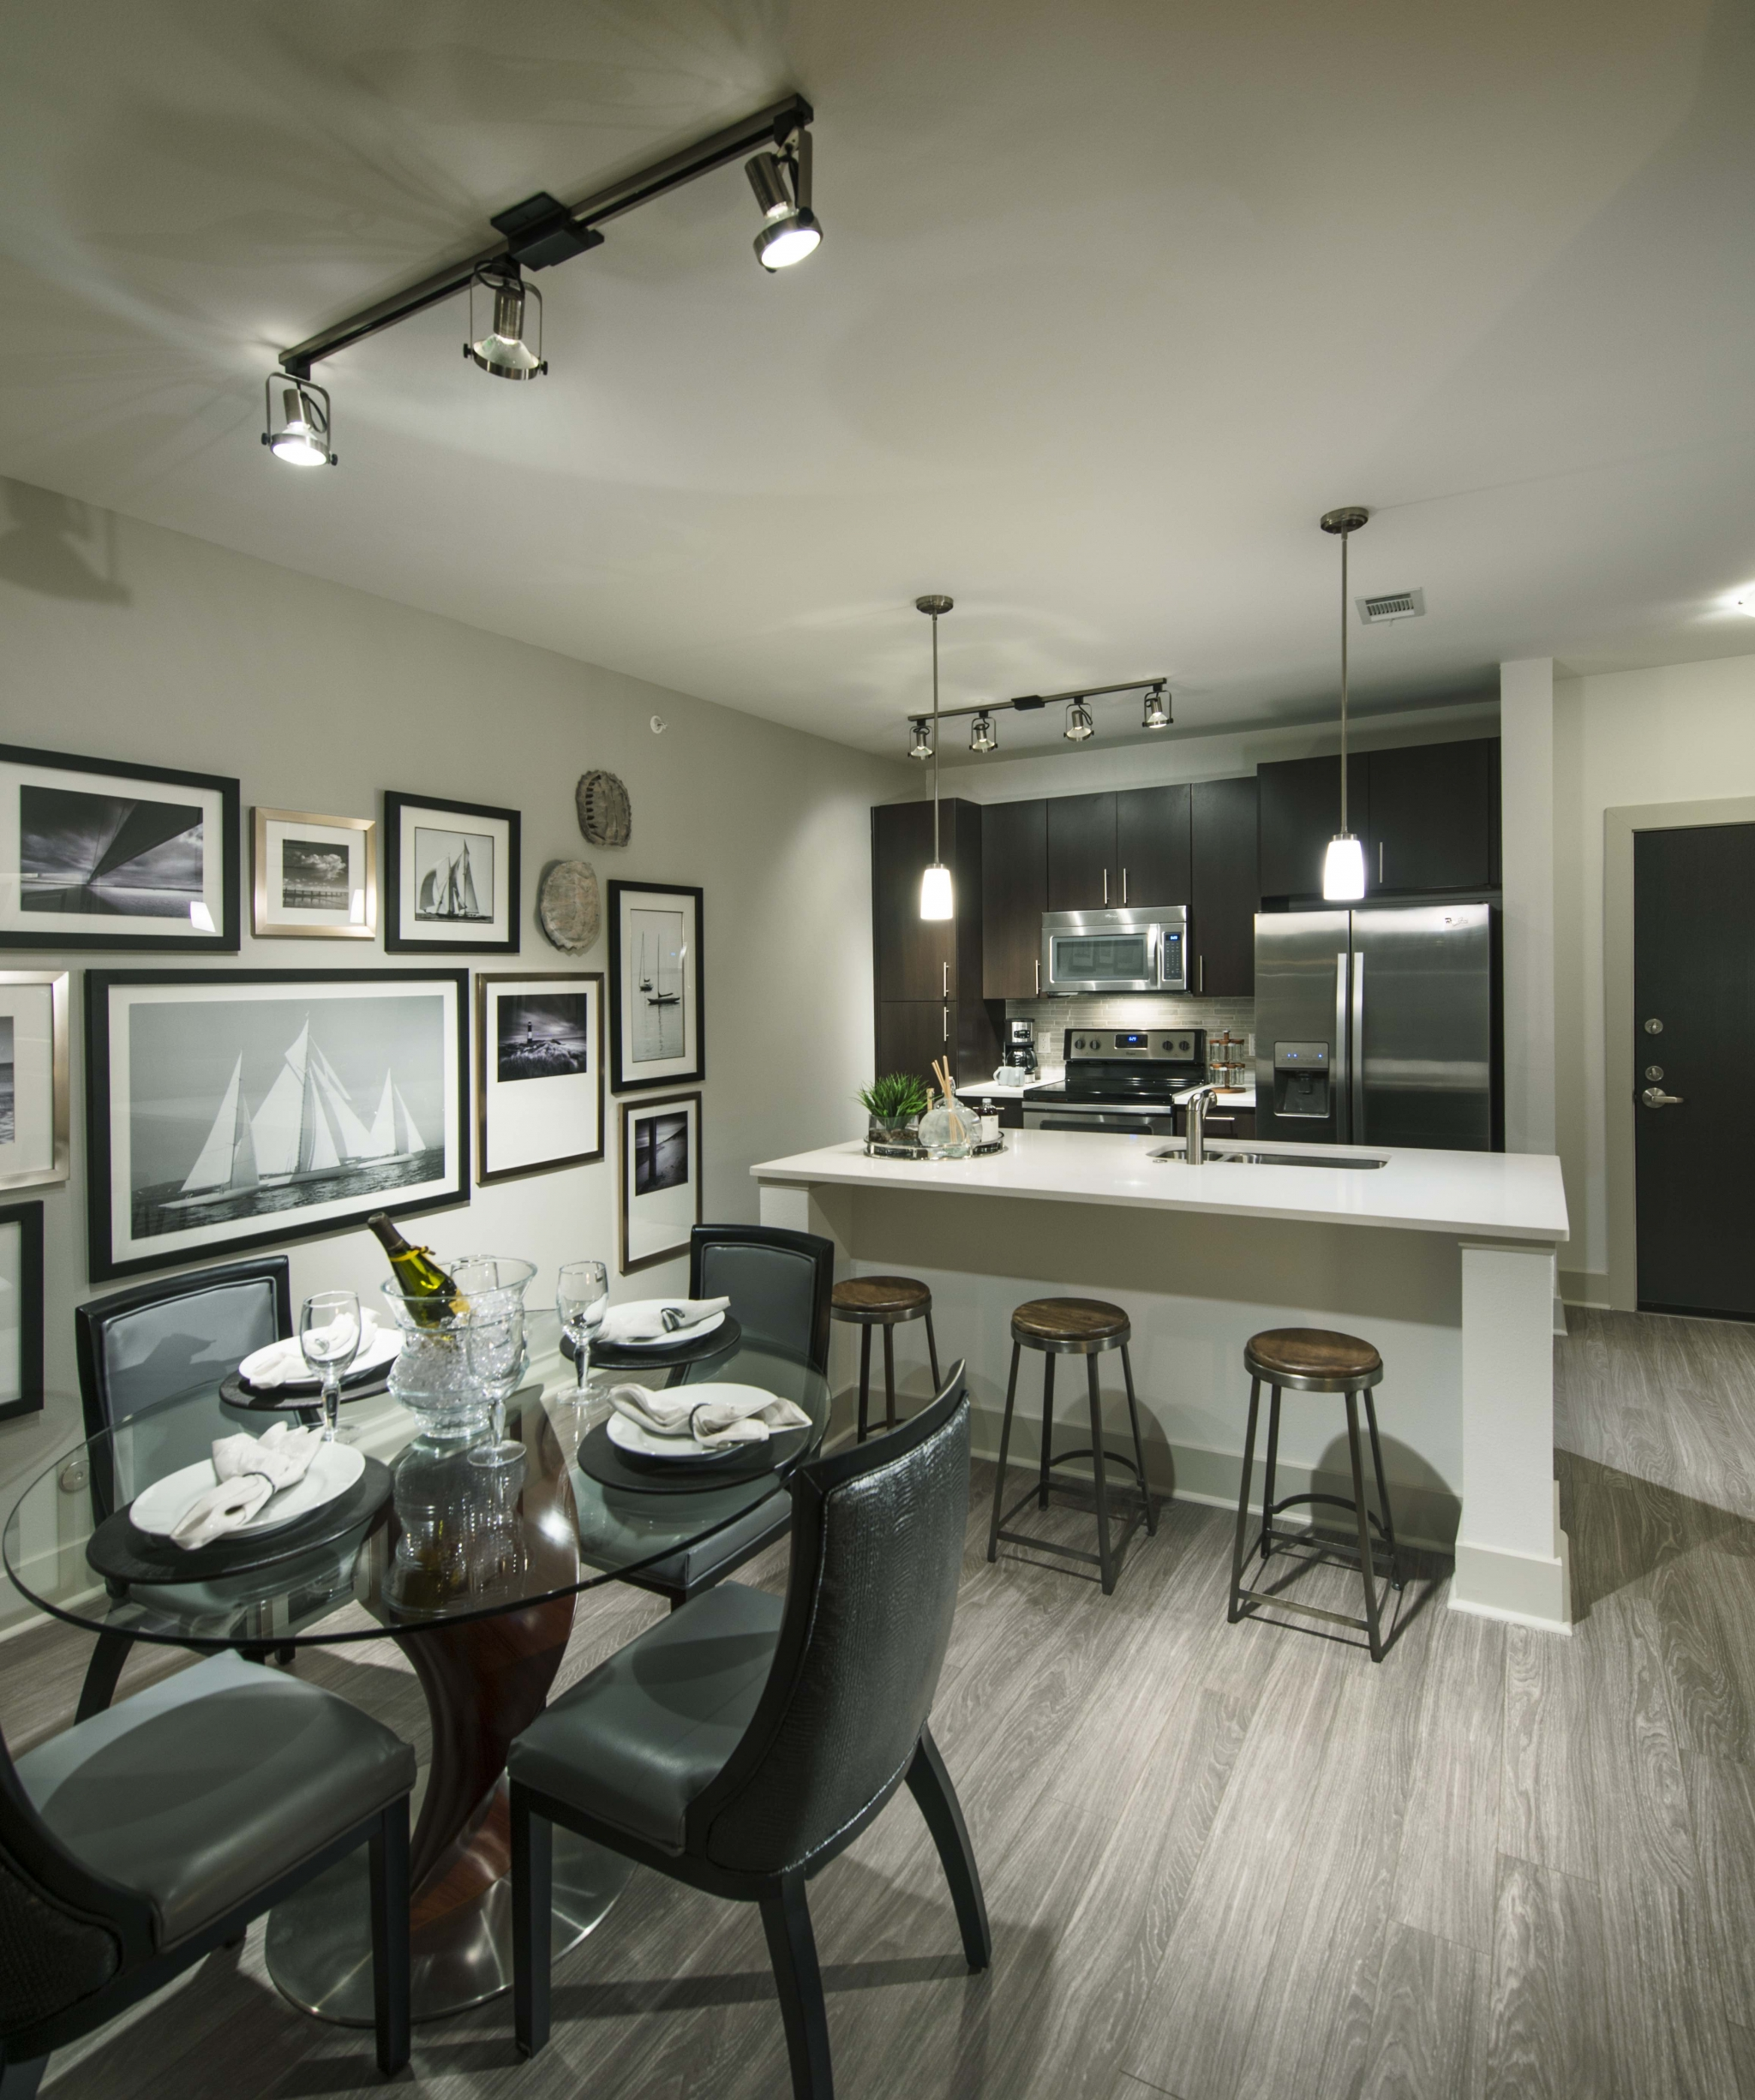 Image of Espresso cabinetry with stone backsplashes for Viridian Design District